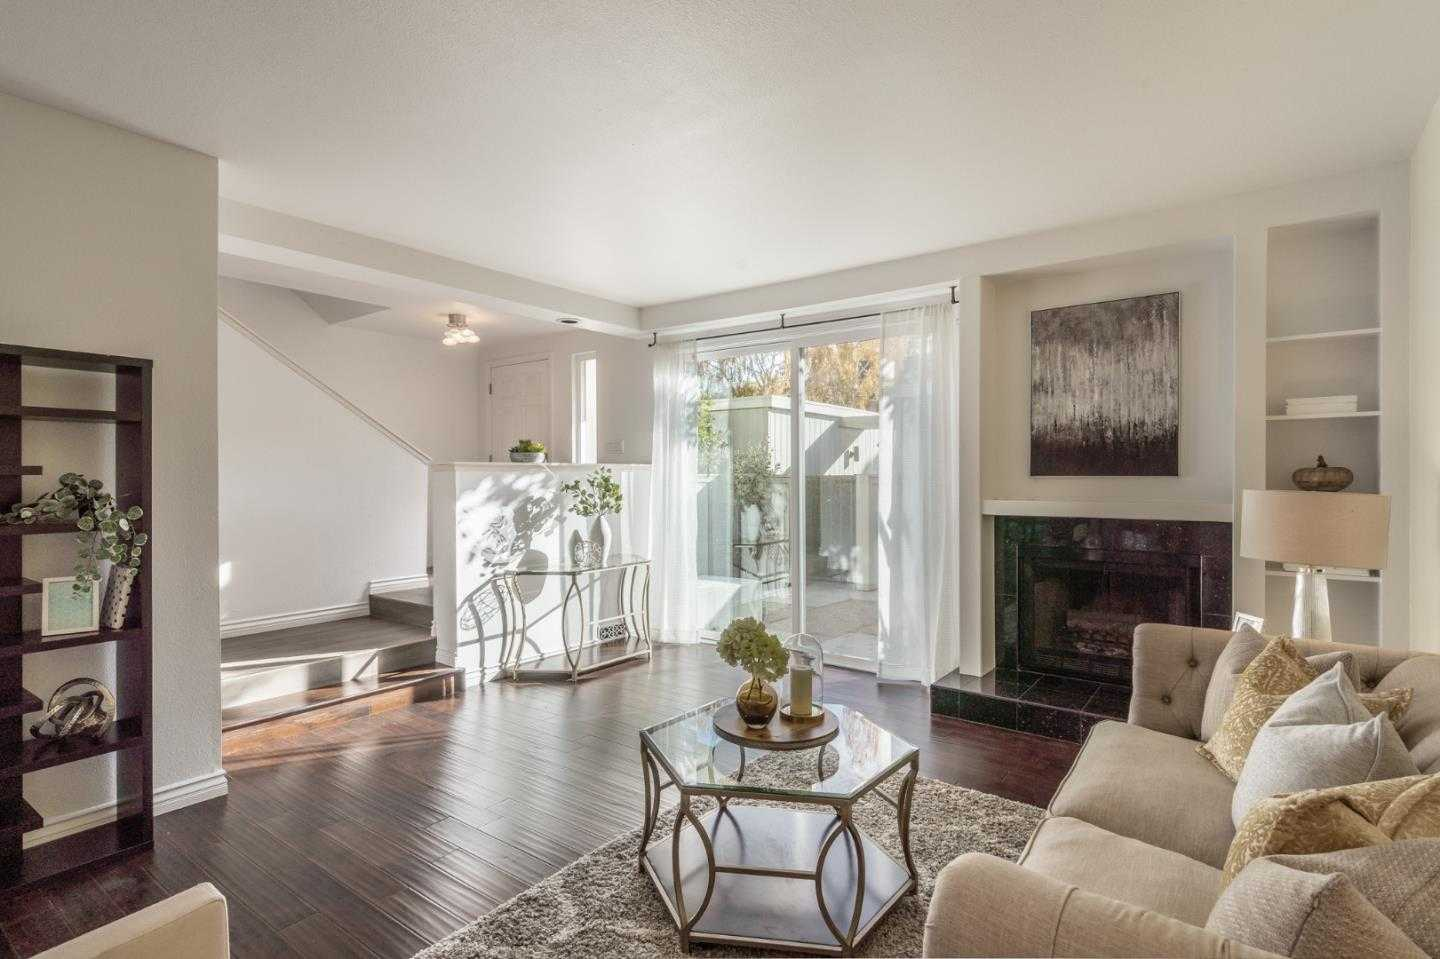 $1,439,000 - 3Br/3Ba -  for Sale in Mountain View